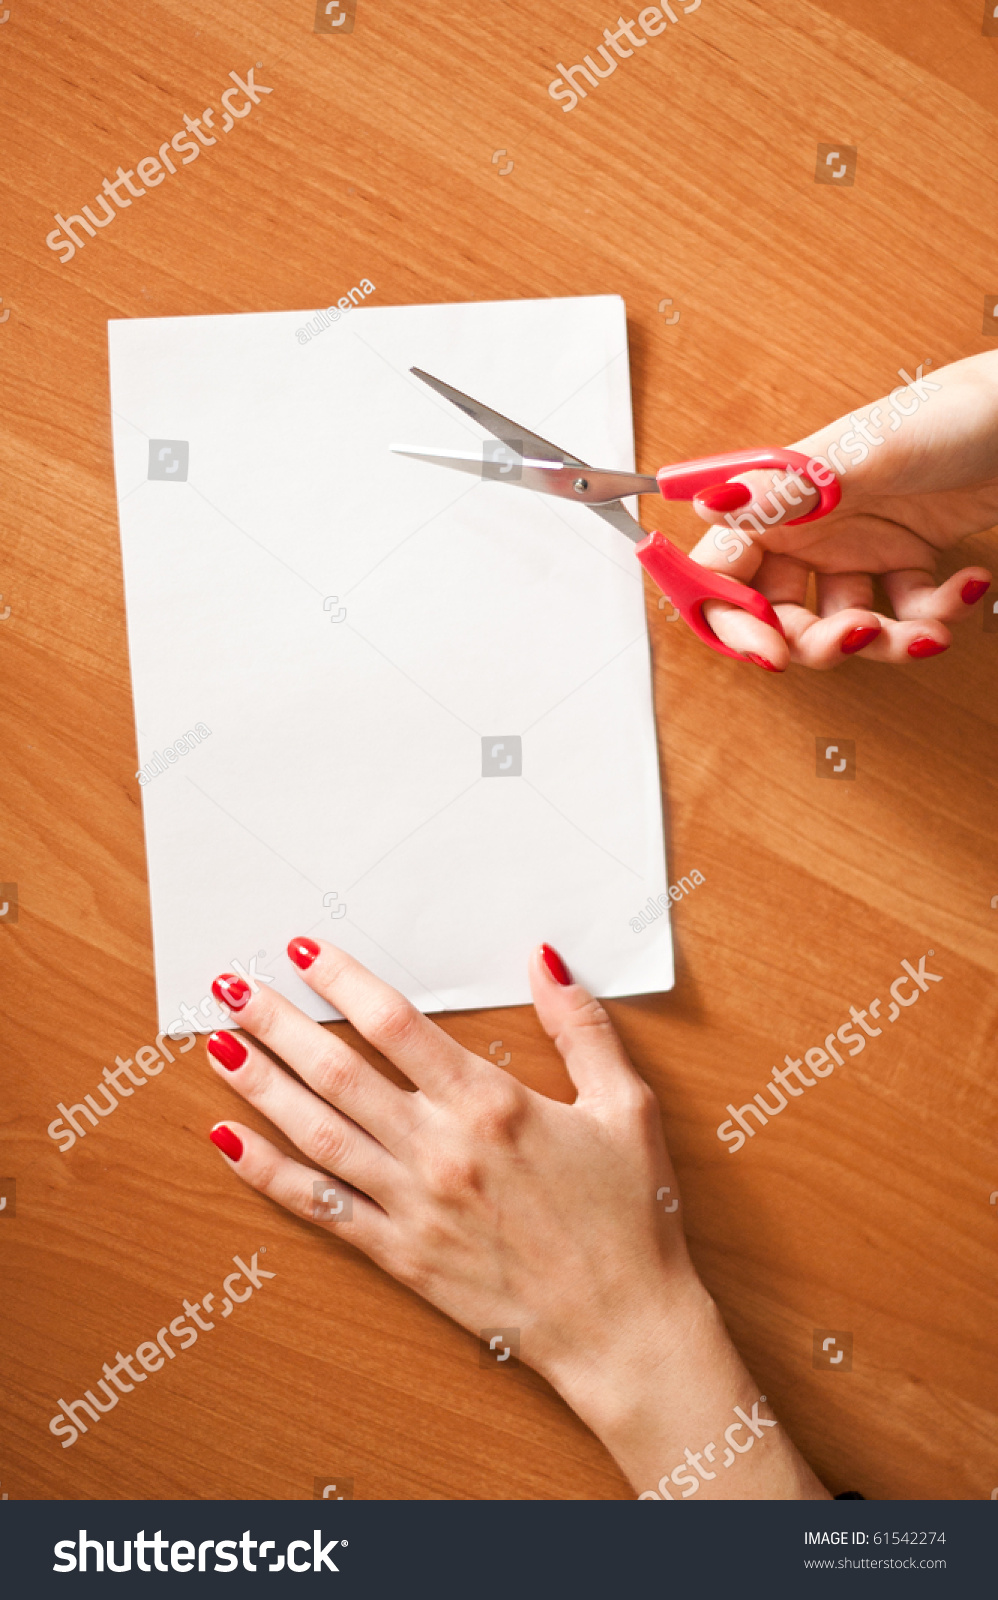 Cutting A Piece Of Paper : Hands cutting a piece of paper stock photo